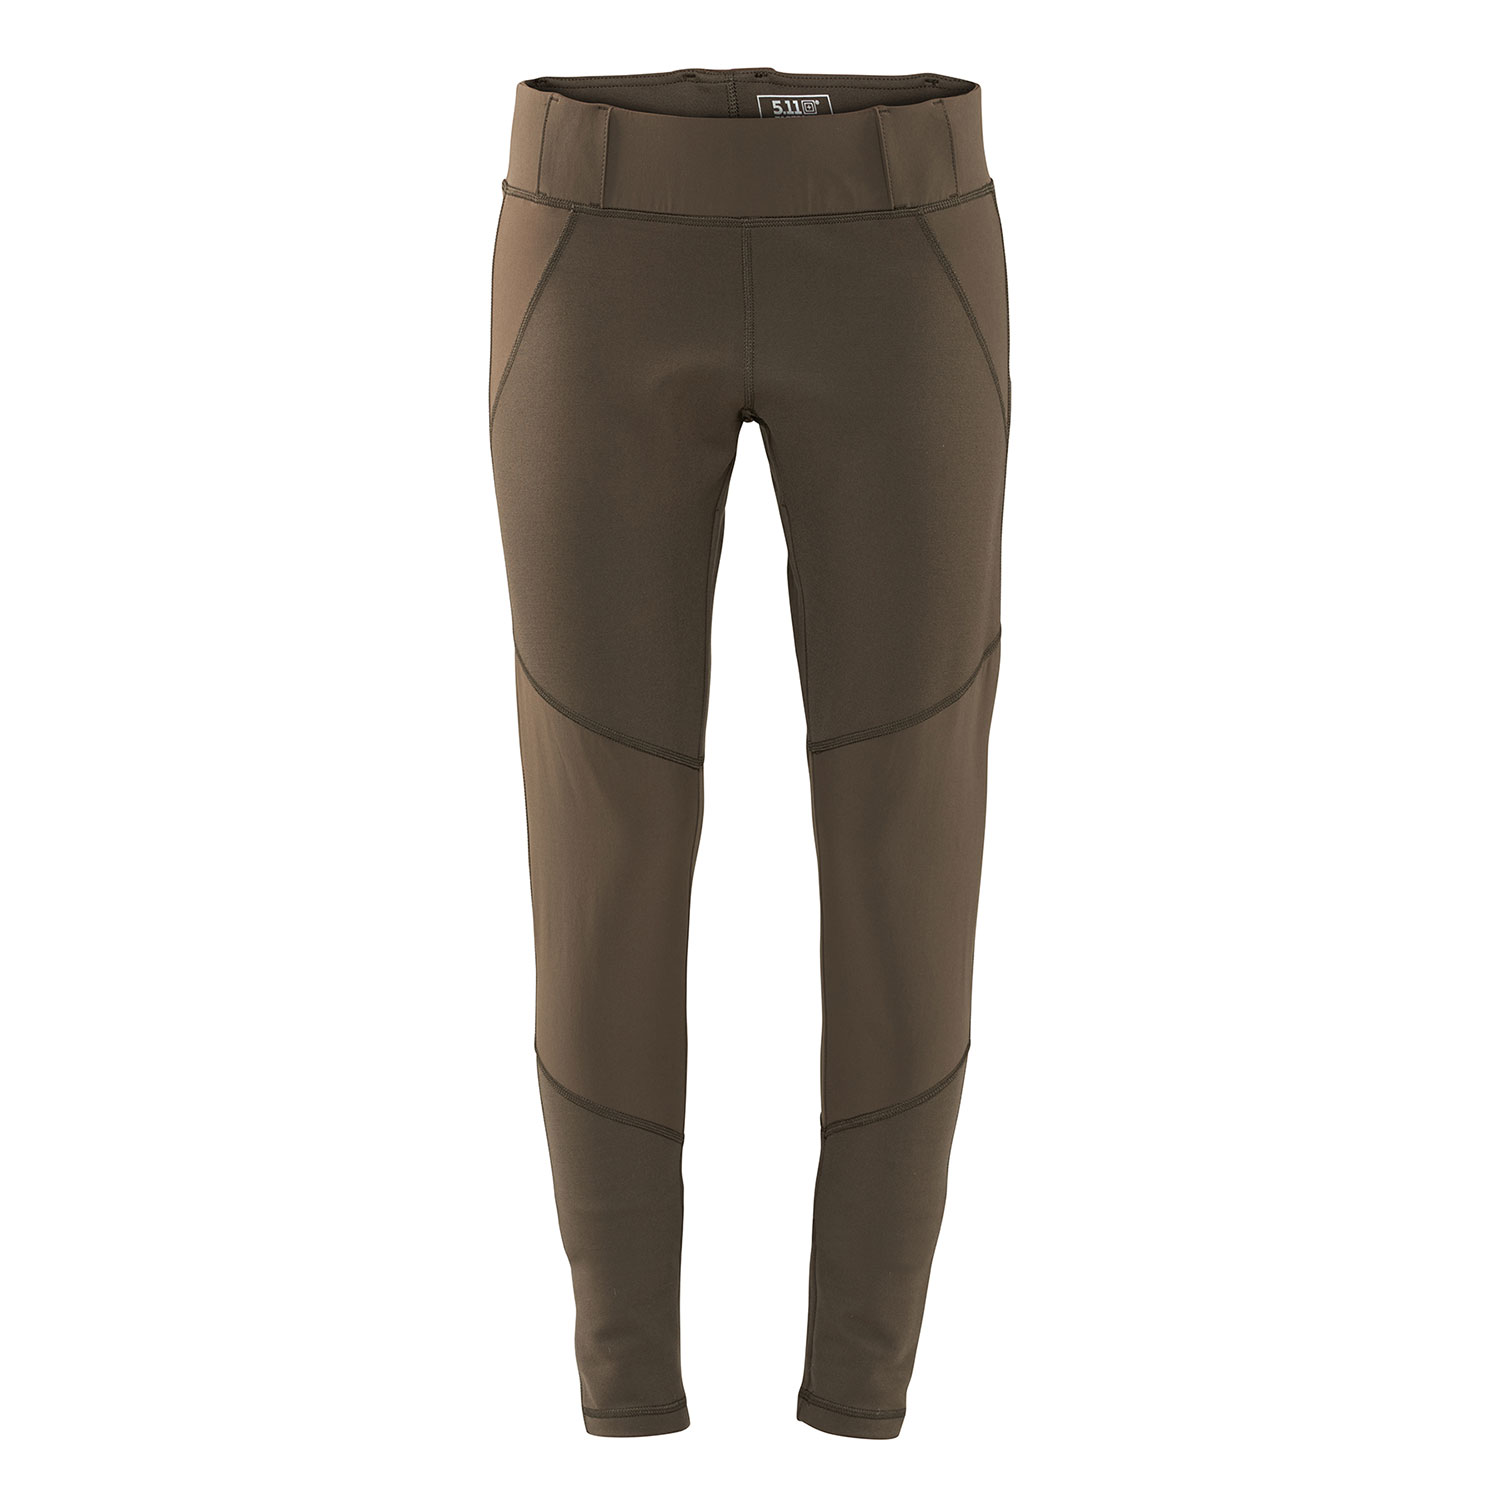 5.11 Tactical Women's Raven Range Tights